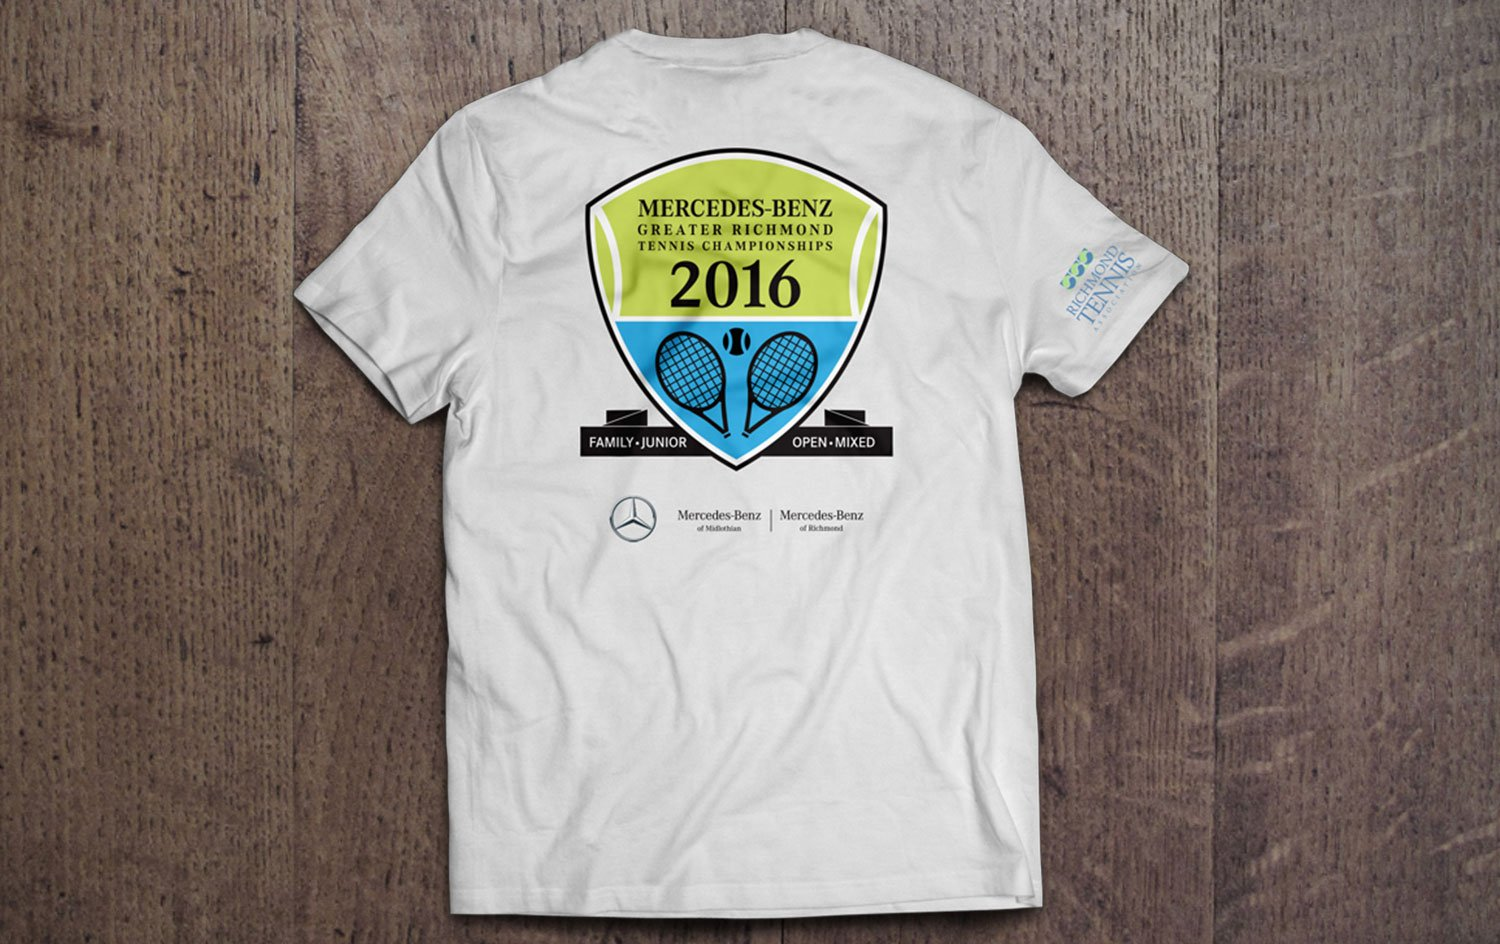 Mercedes Tennis Tournament shirt